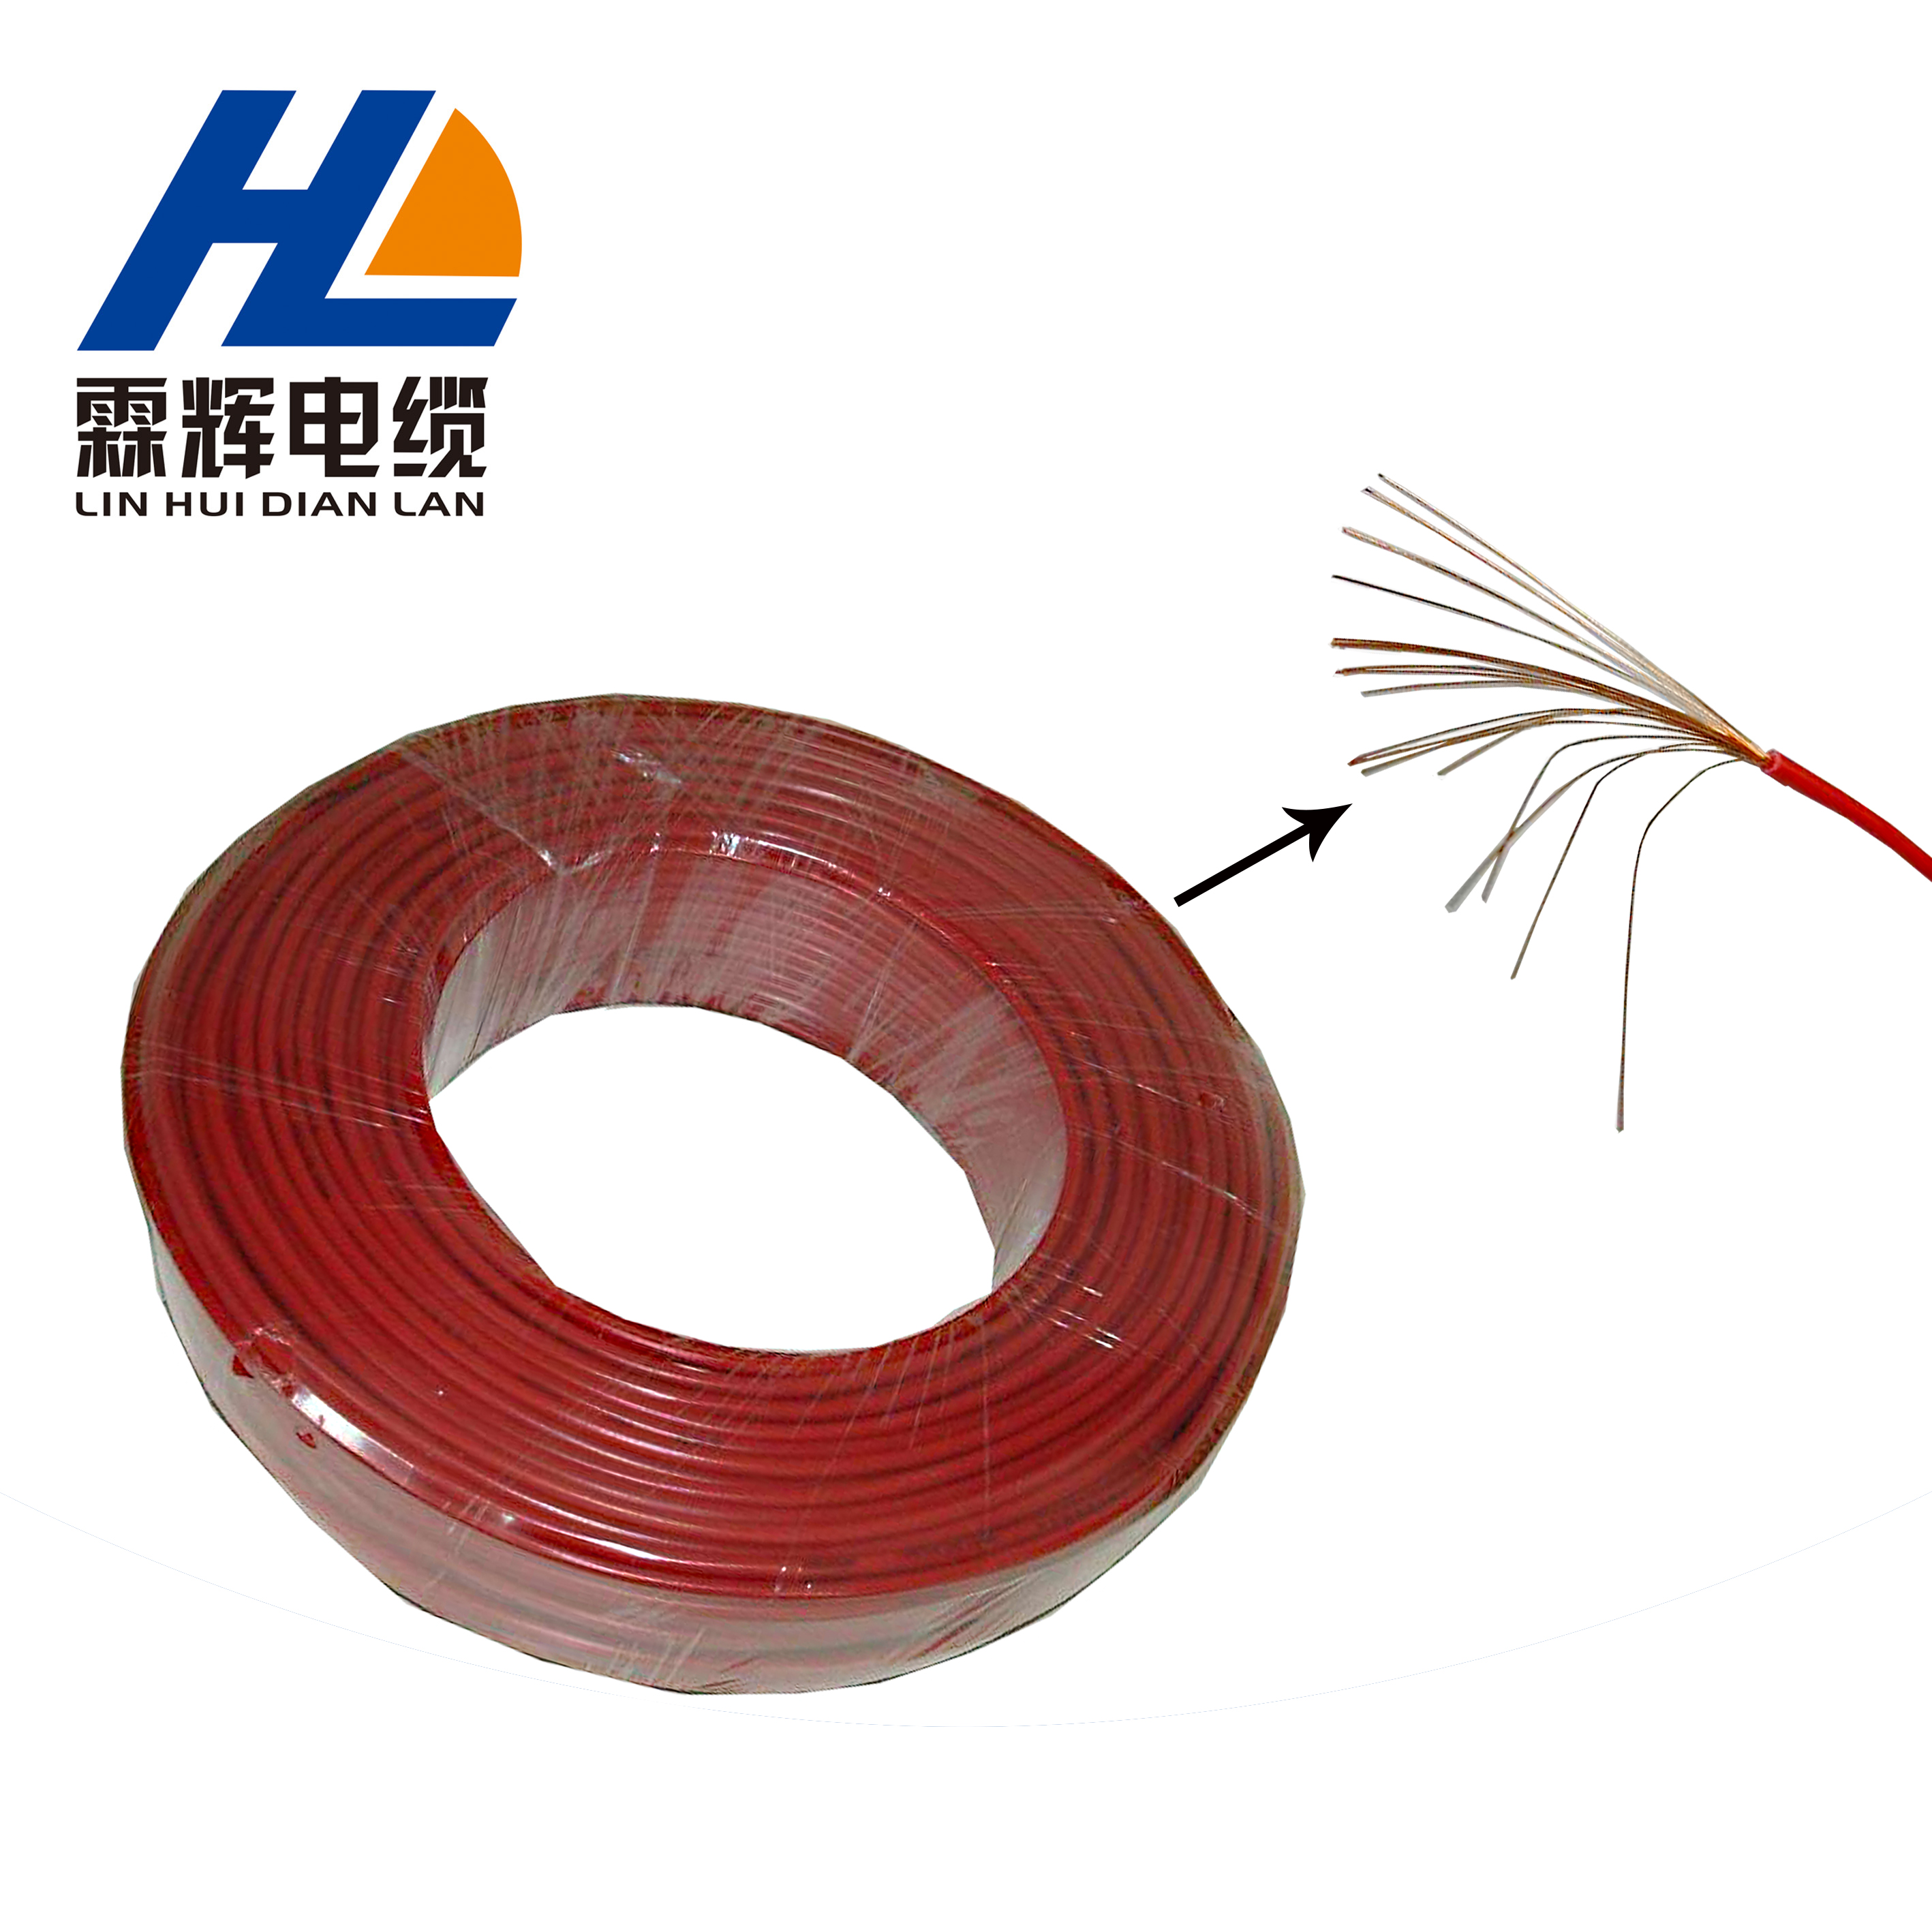 China Copper Manufacturers And Suppliers On Automotive Wiring Harness In 2